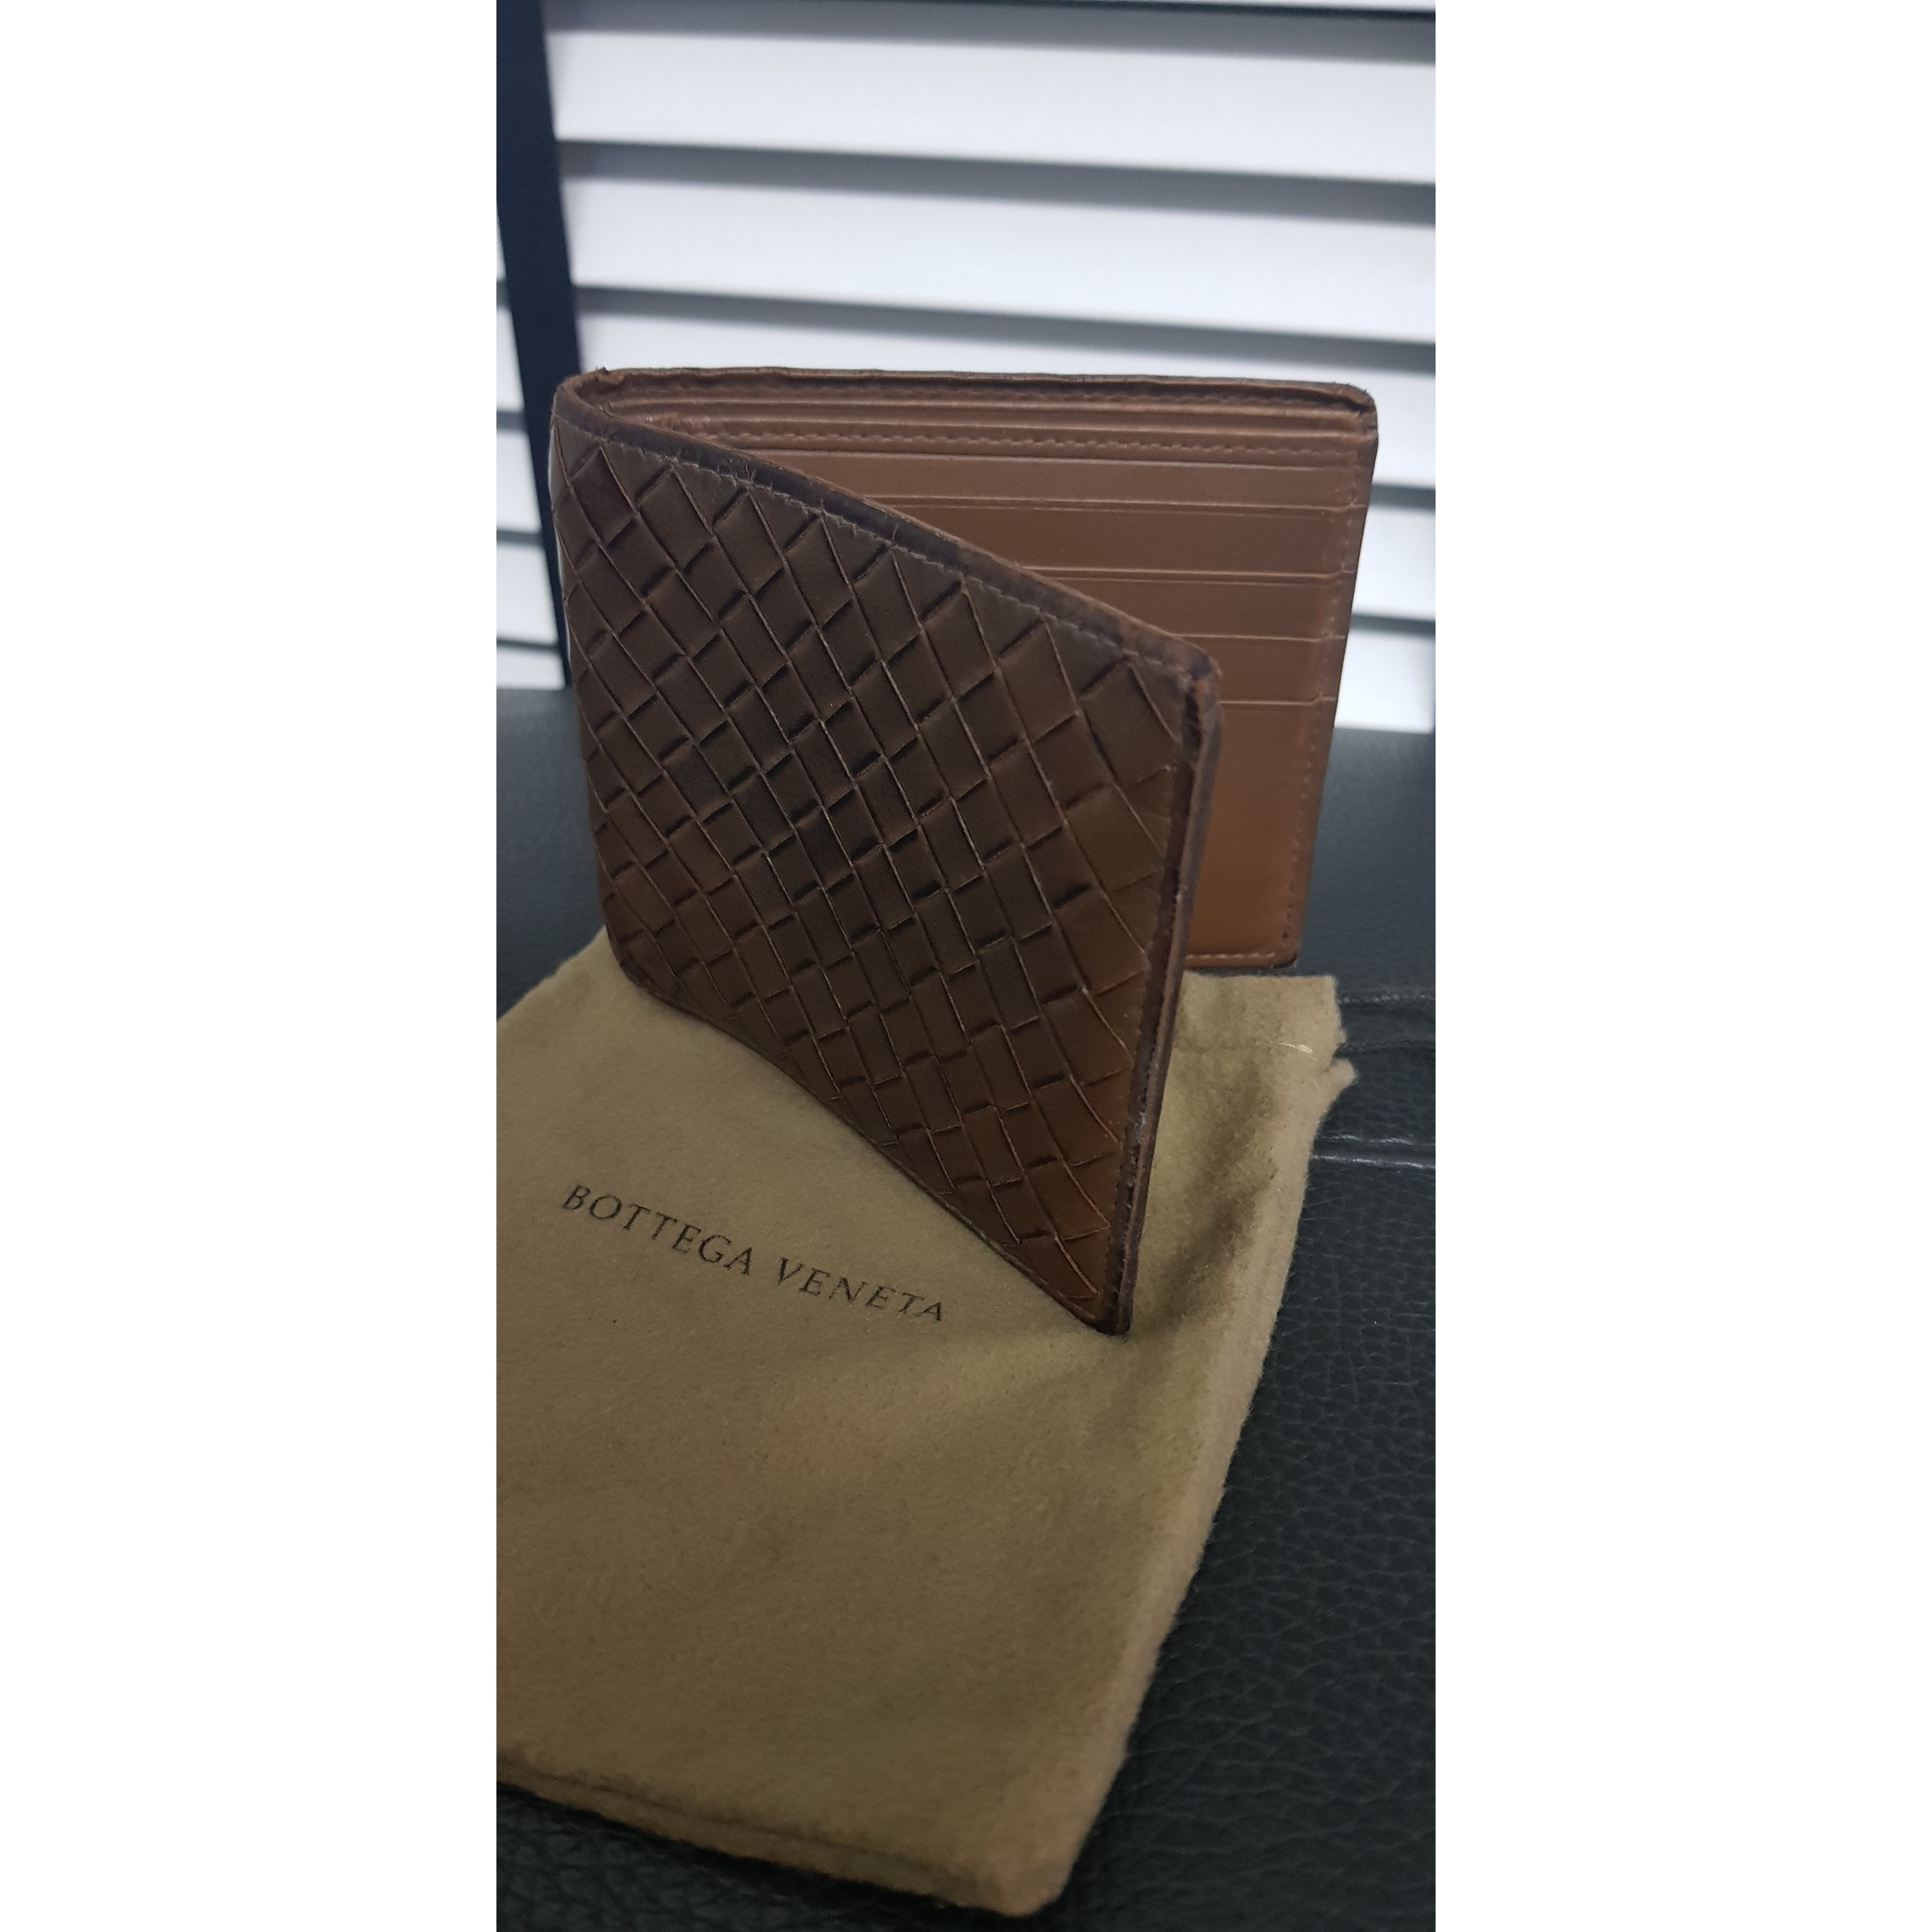 22ff77f84a0 Bottega veneta mens wallet Size : billfold 10 card compartment 2 notes  compartment Stamp : na Color : camel brown Style : suits men Leather : calf  Condition ...